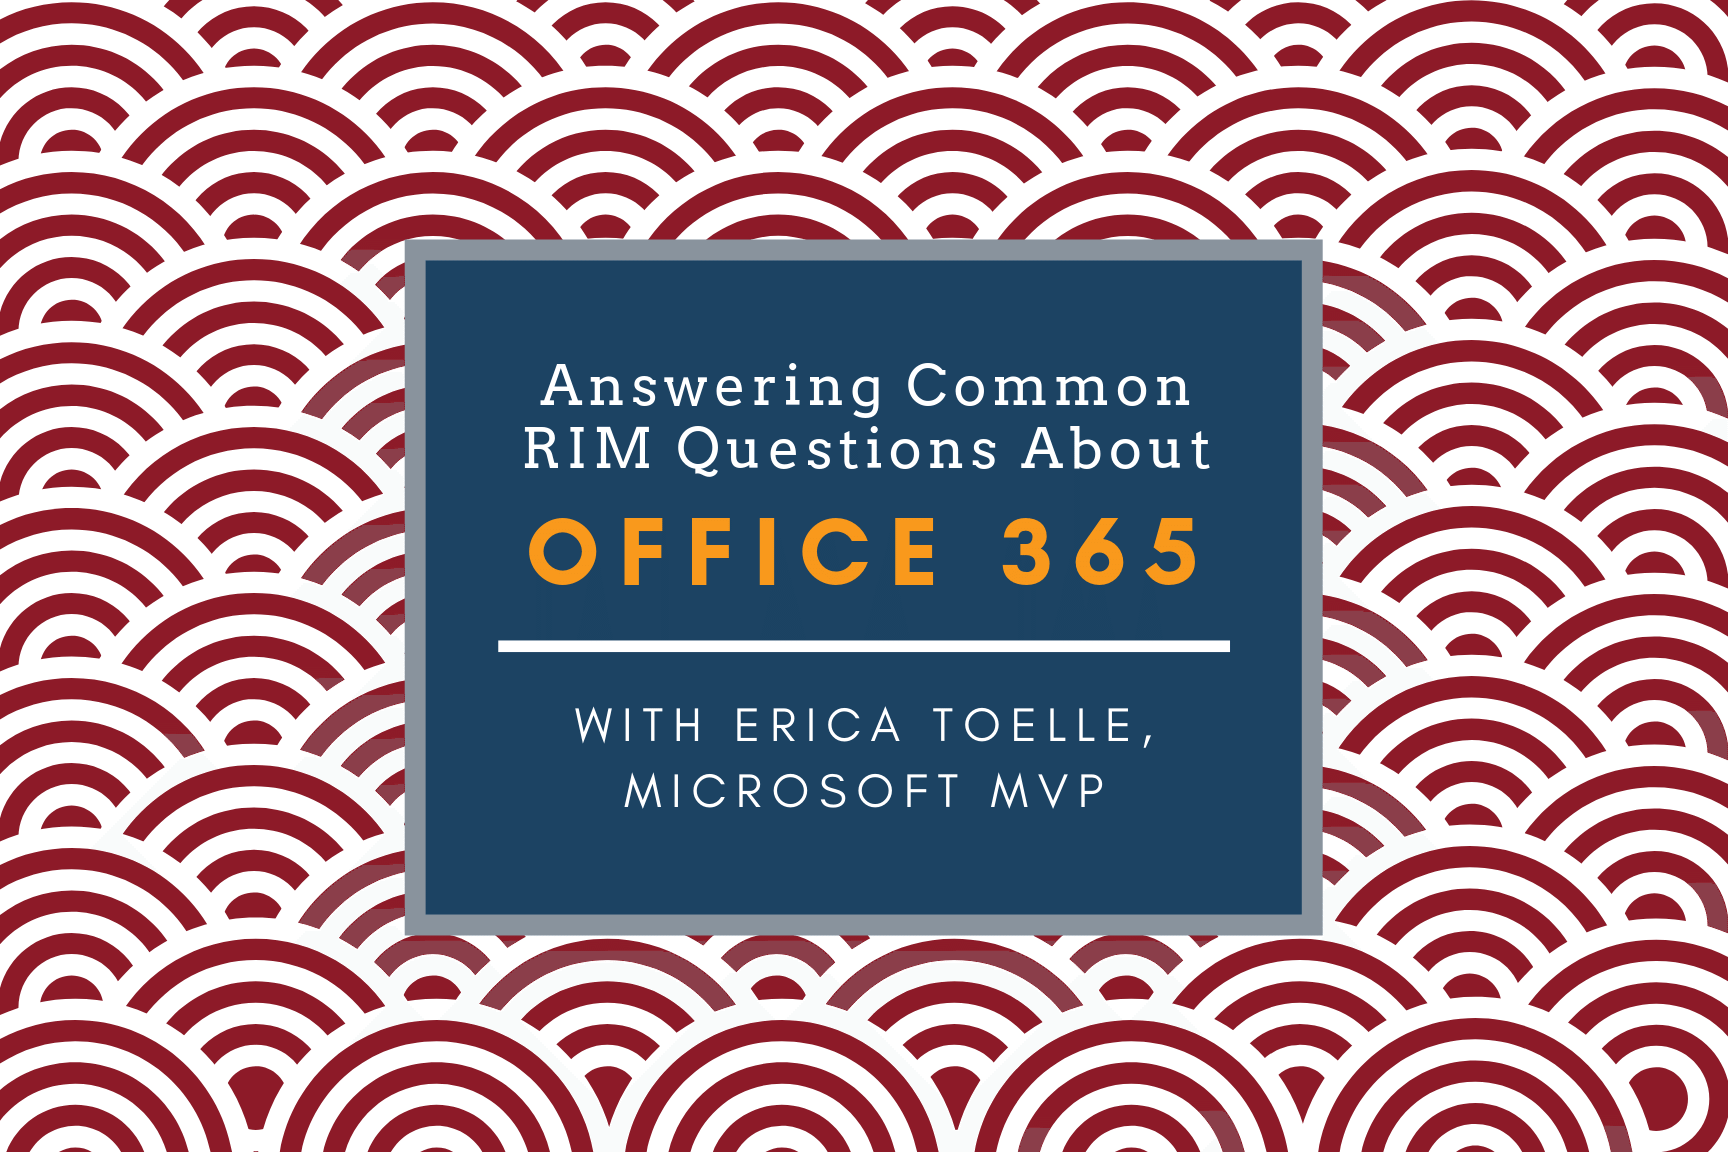 Office 365 Records Questions with Erica Toelle